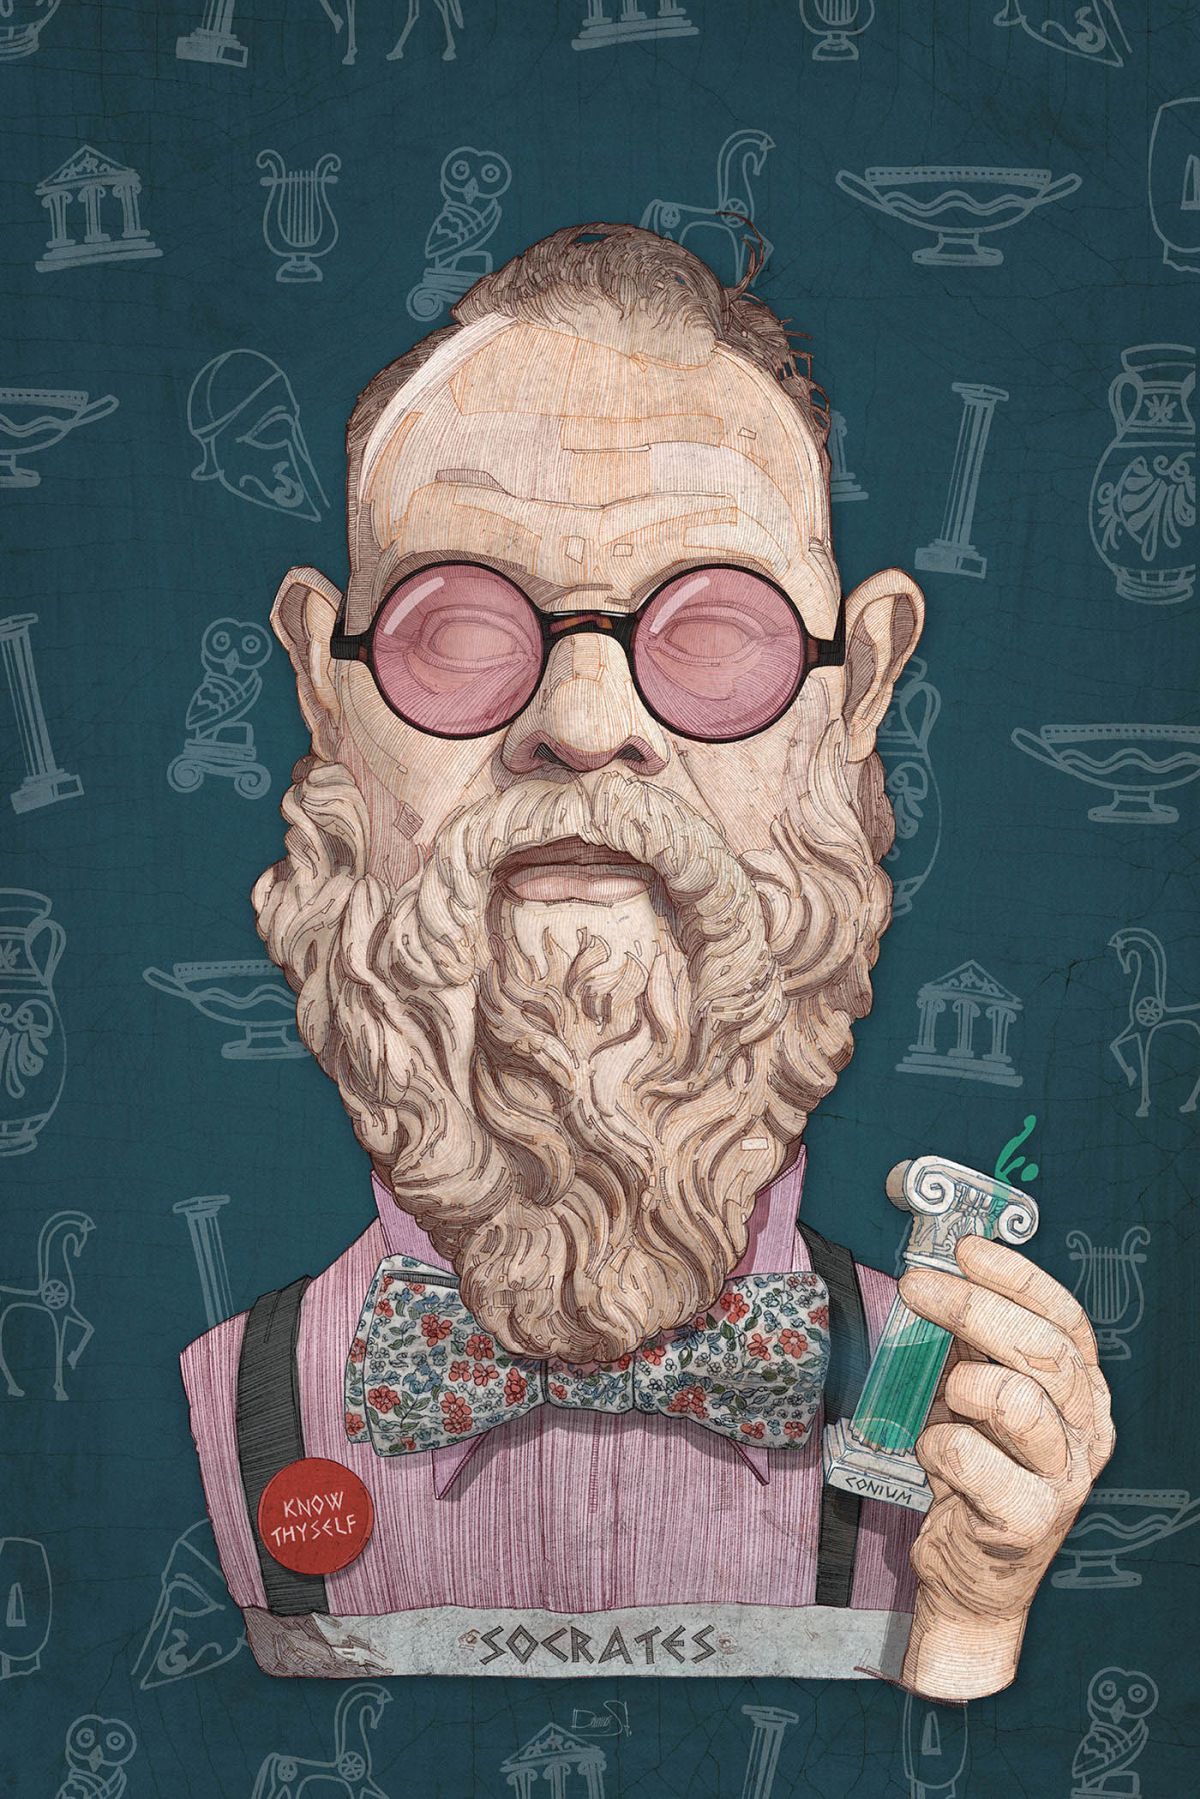 caricature illustrations socrates by stavros damos